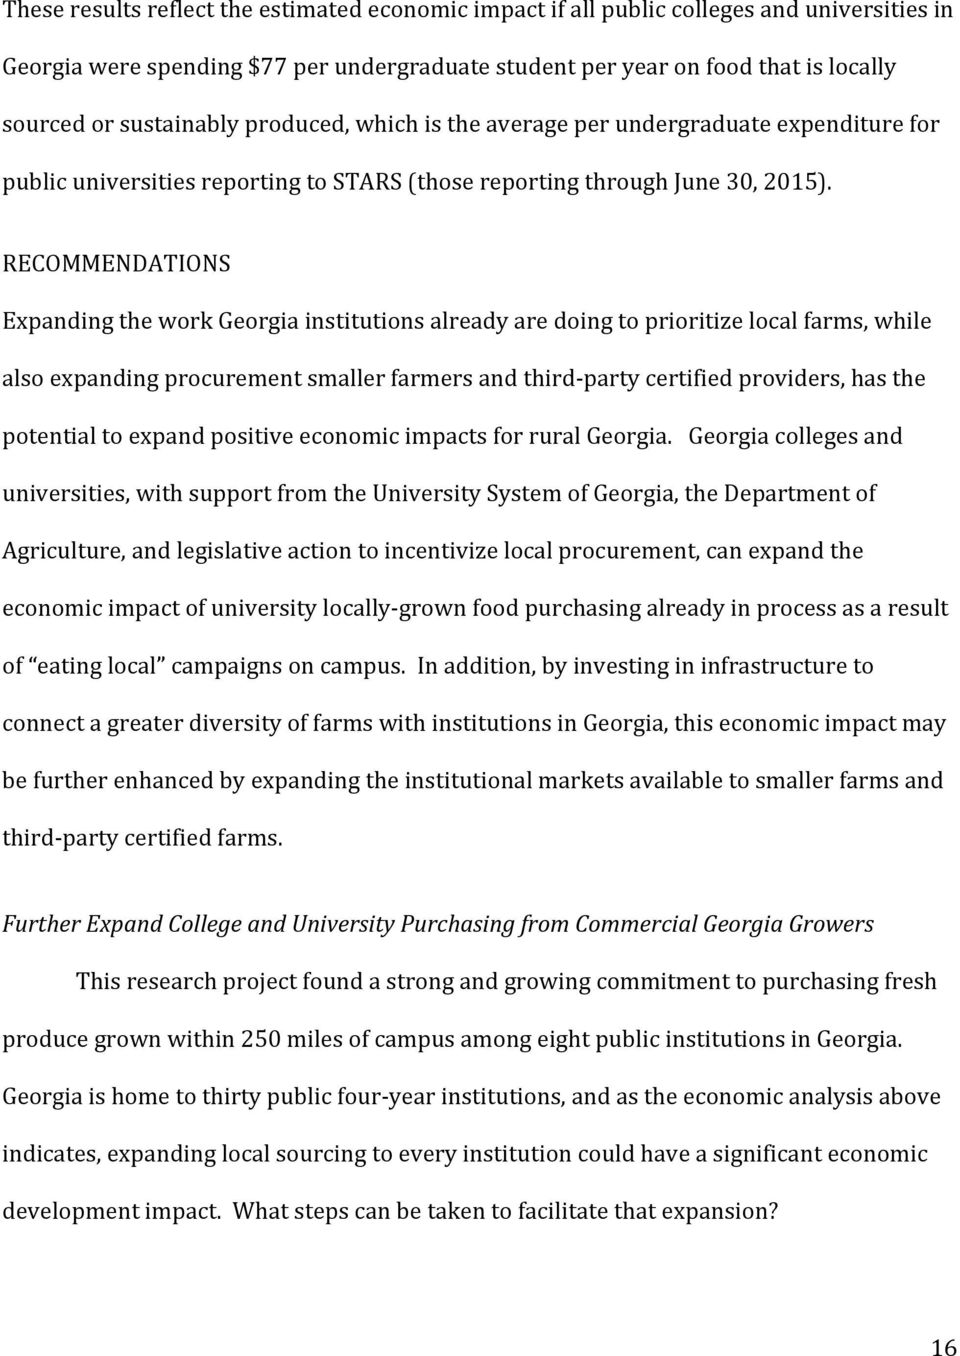 RECOMMENDATIONS Expanding the work Georgia institutions already are doing to prioritize local farms, while also expanding procurement smaller farmers and third- party certified providers, has the